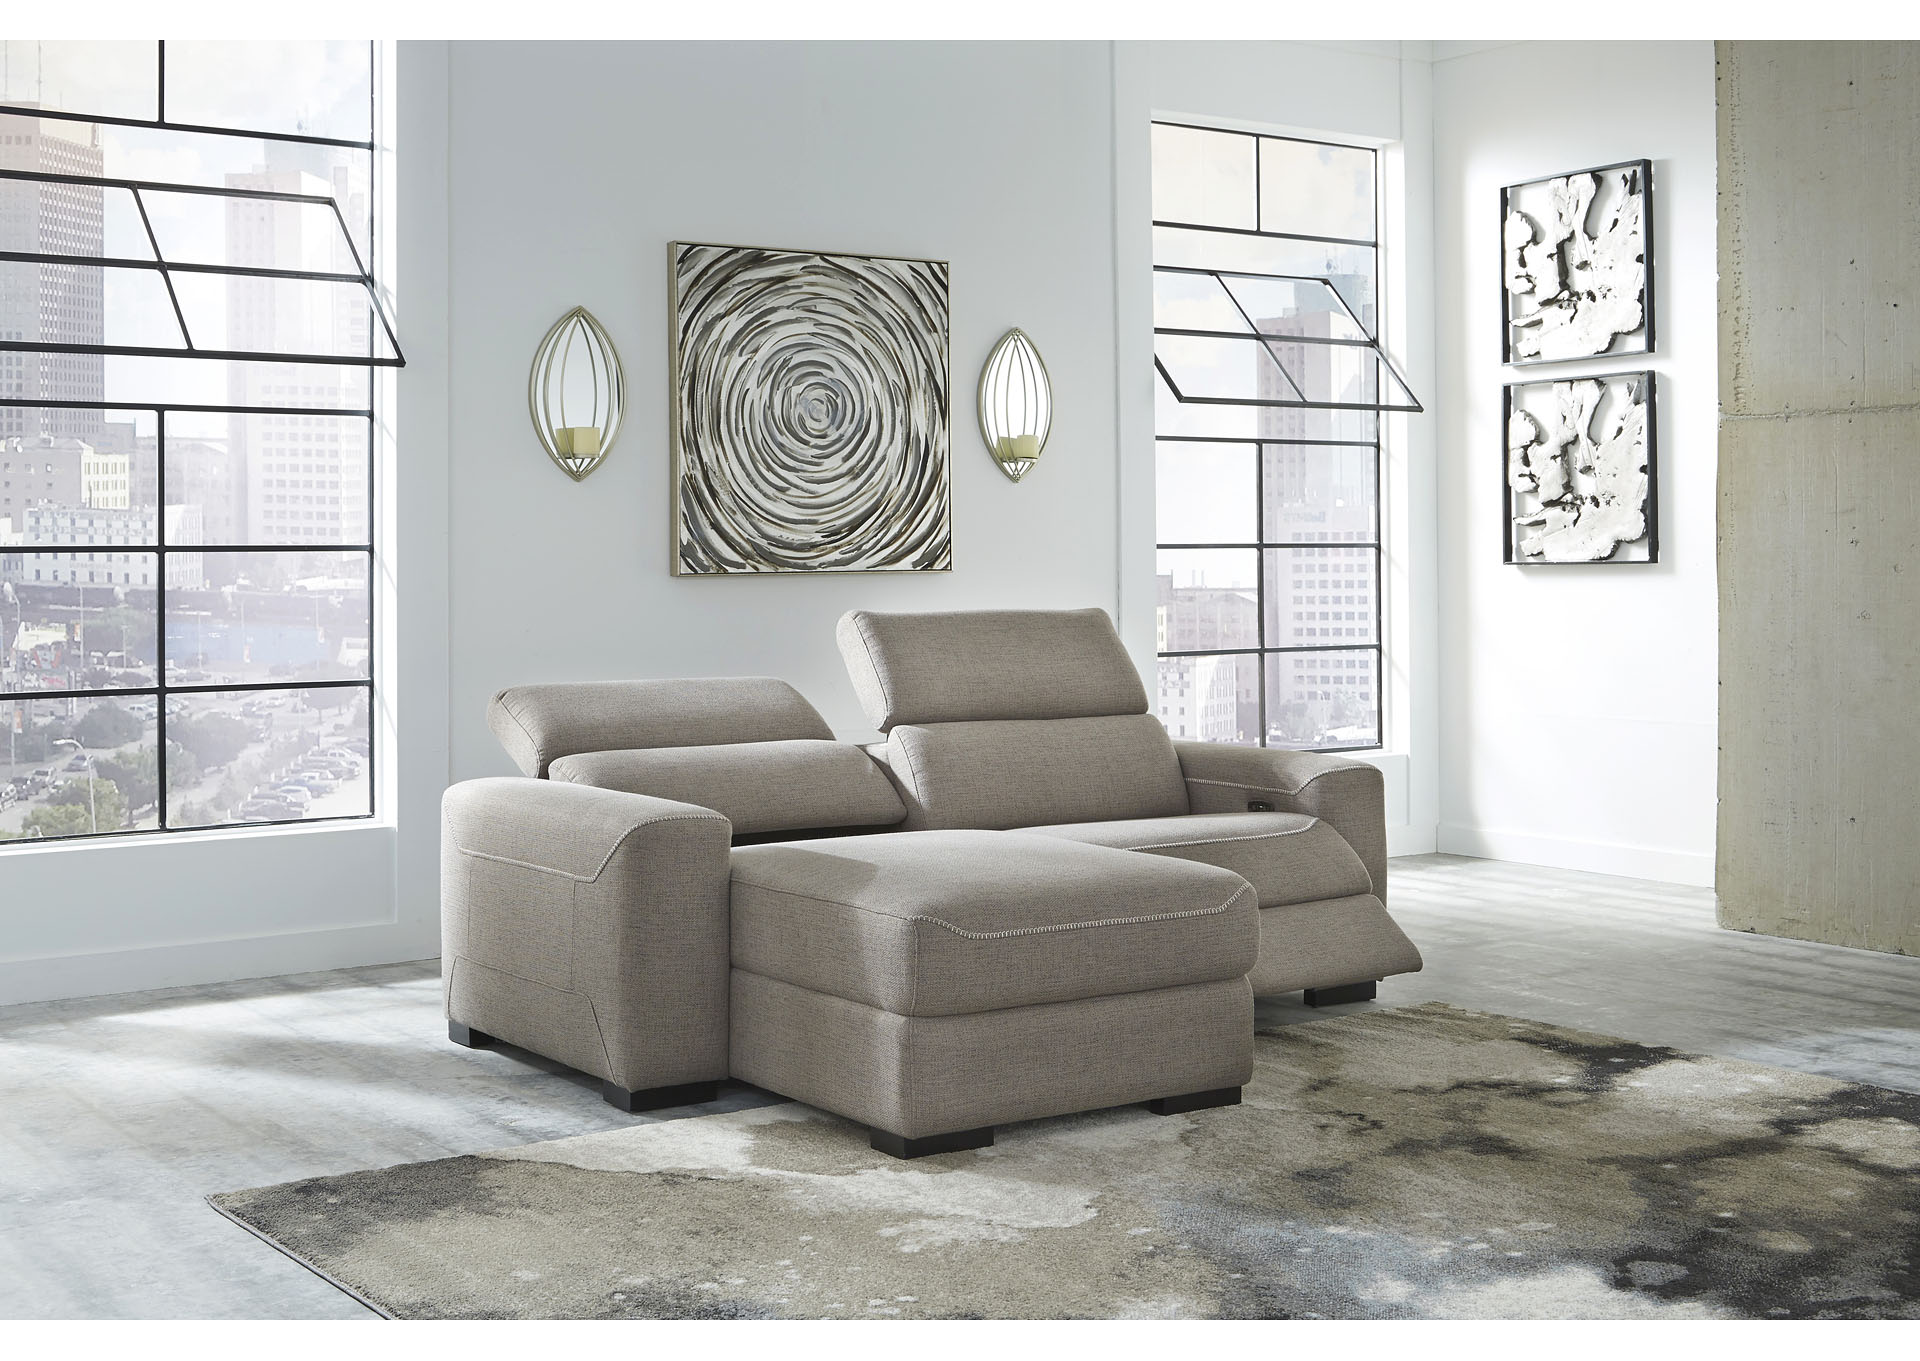 Mabton Gray Left-Arm Facing Power Reclining 2 Piece Sectional Chaise,Signature Design By Ashley